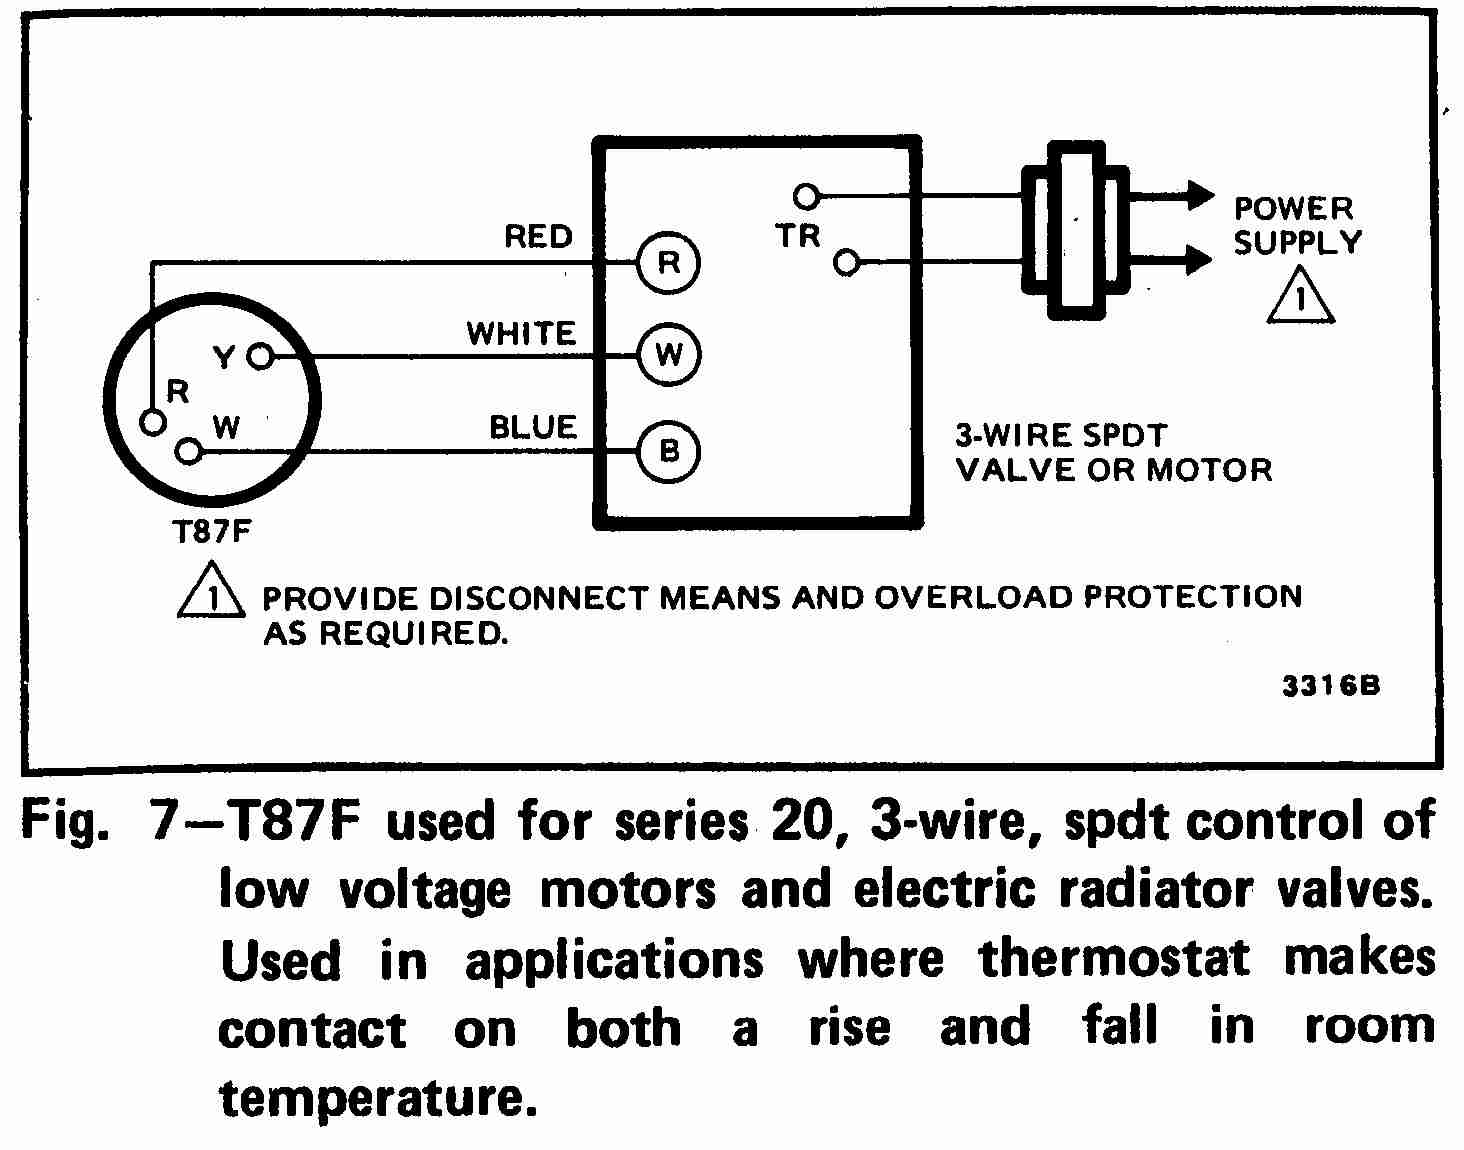 Thermostat Relay Wiring Diagram : Room thermostat wiring diagrams for hvac systems